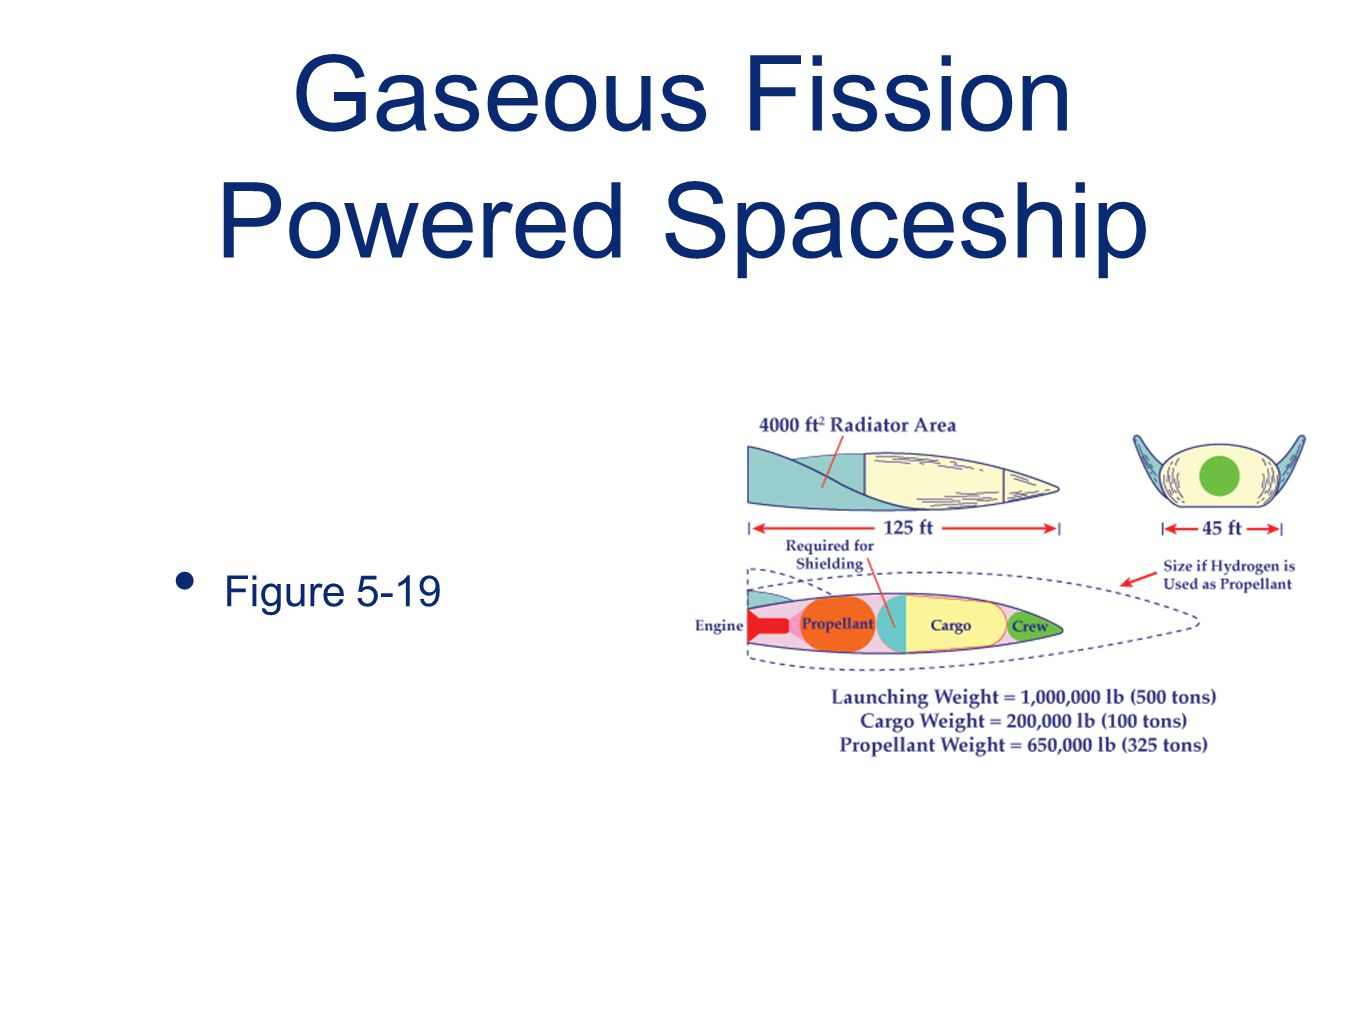 Gaseous Fission Powered Spaceship